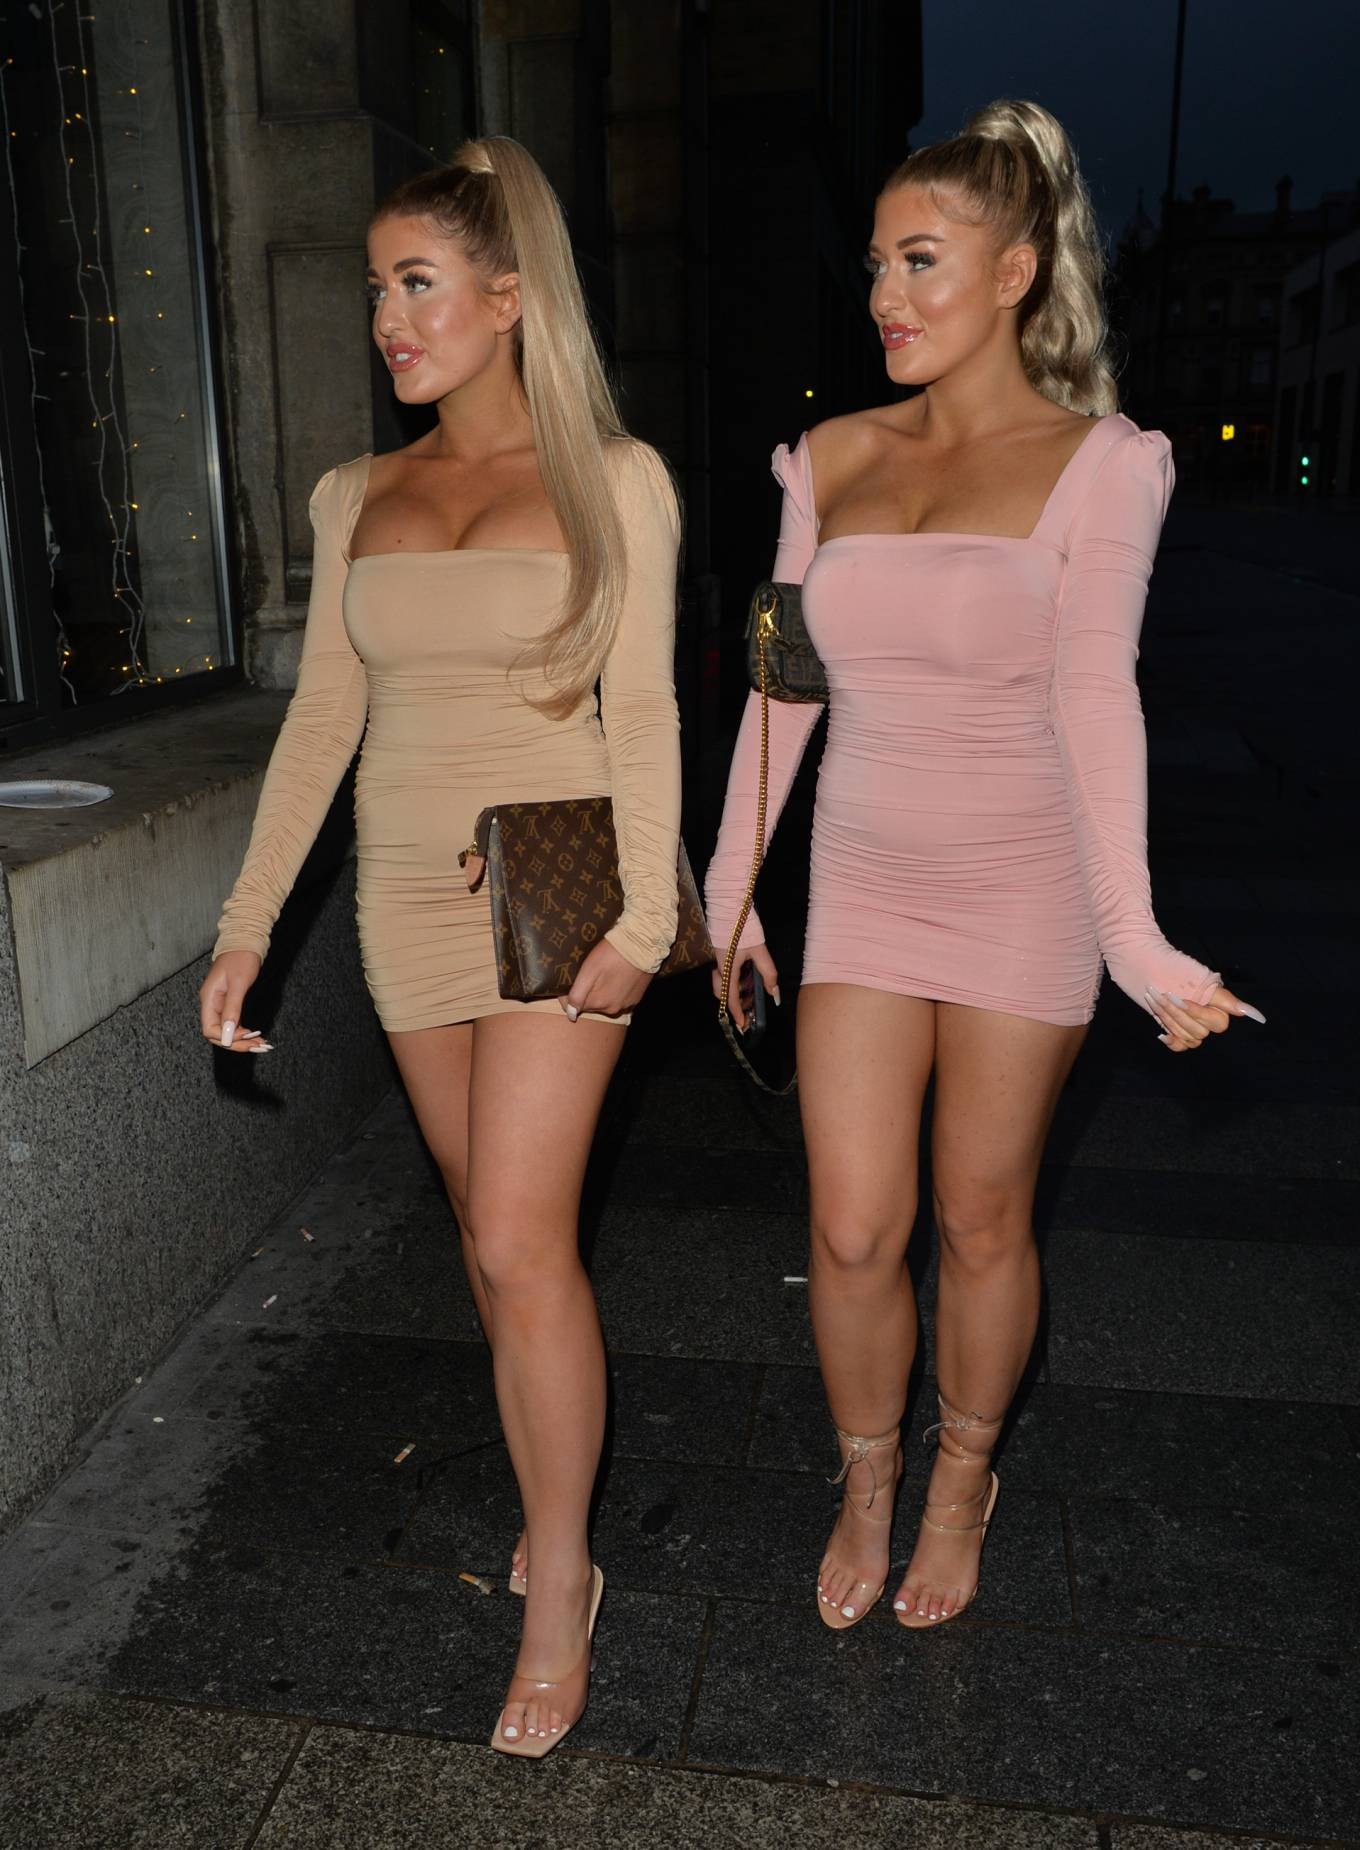 Eve Gale 2020 : Jess and Eve Gale – Night out for dinner in Liverpool -09